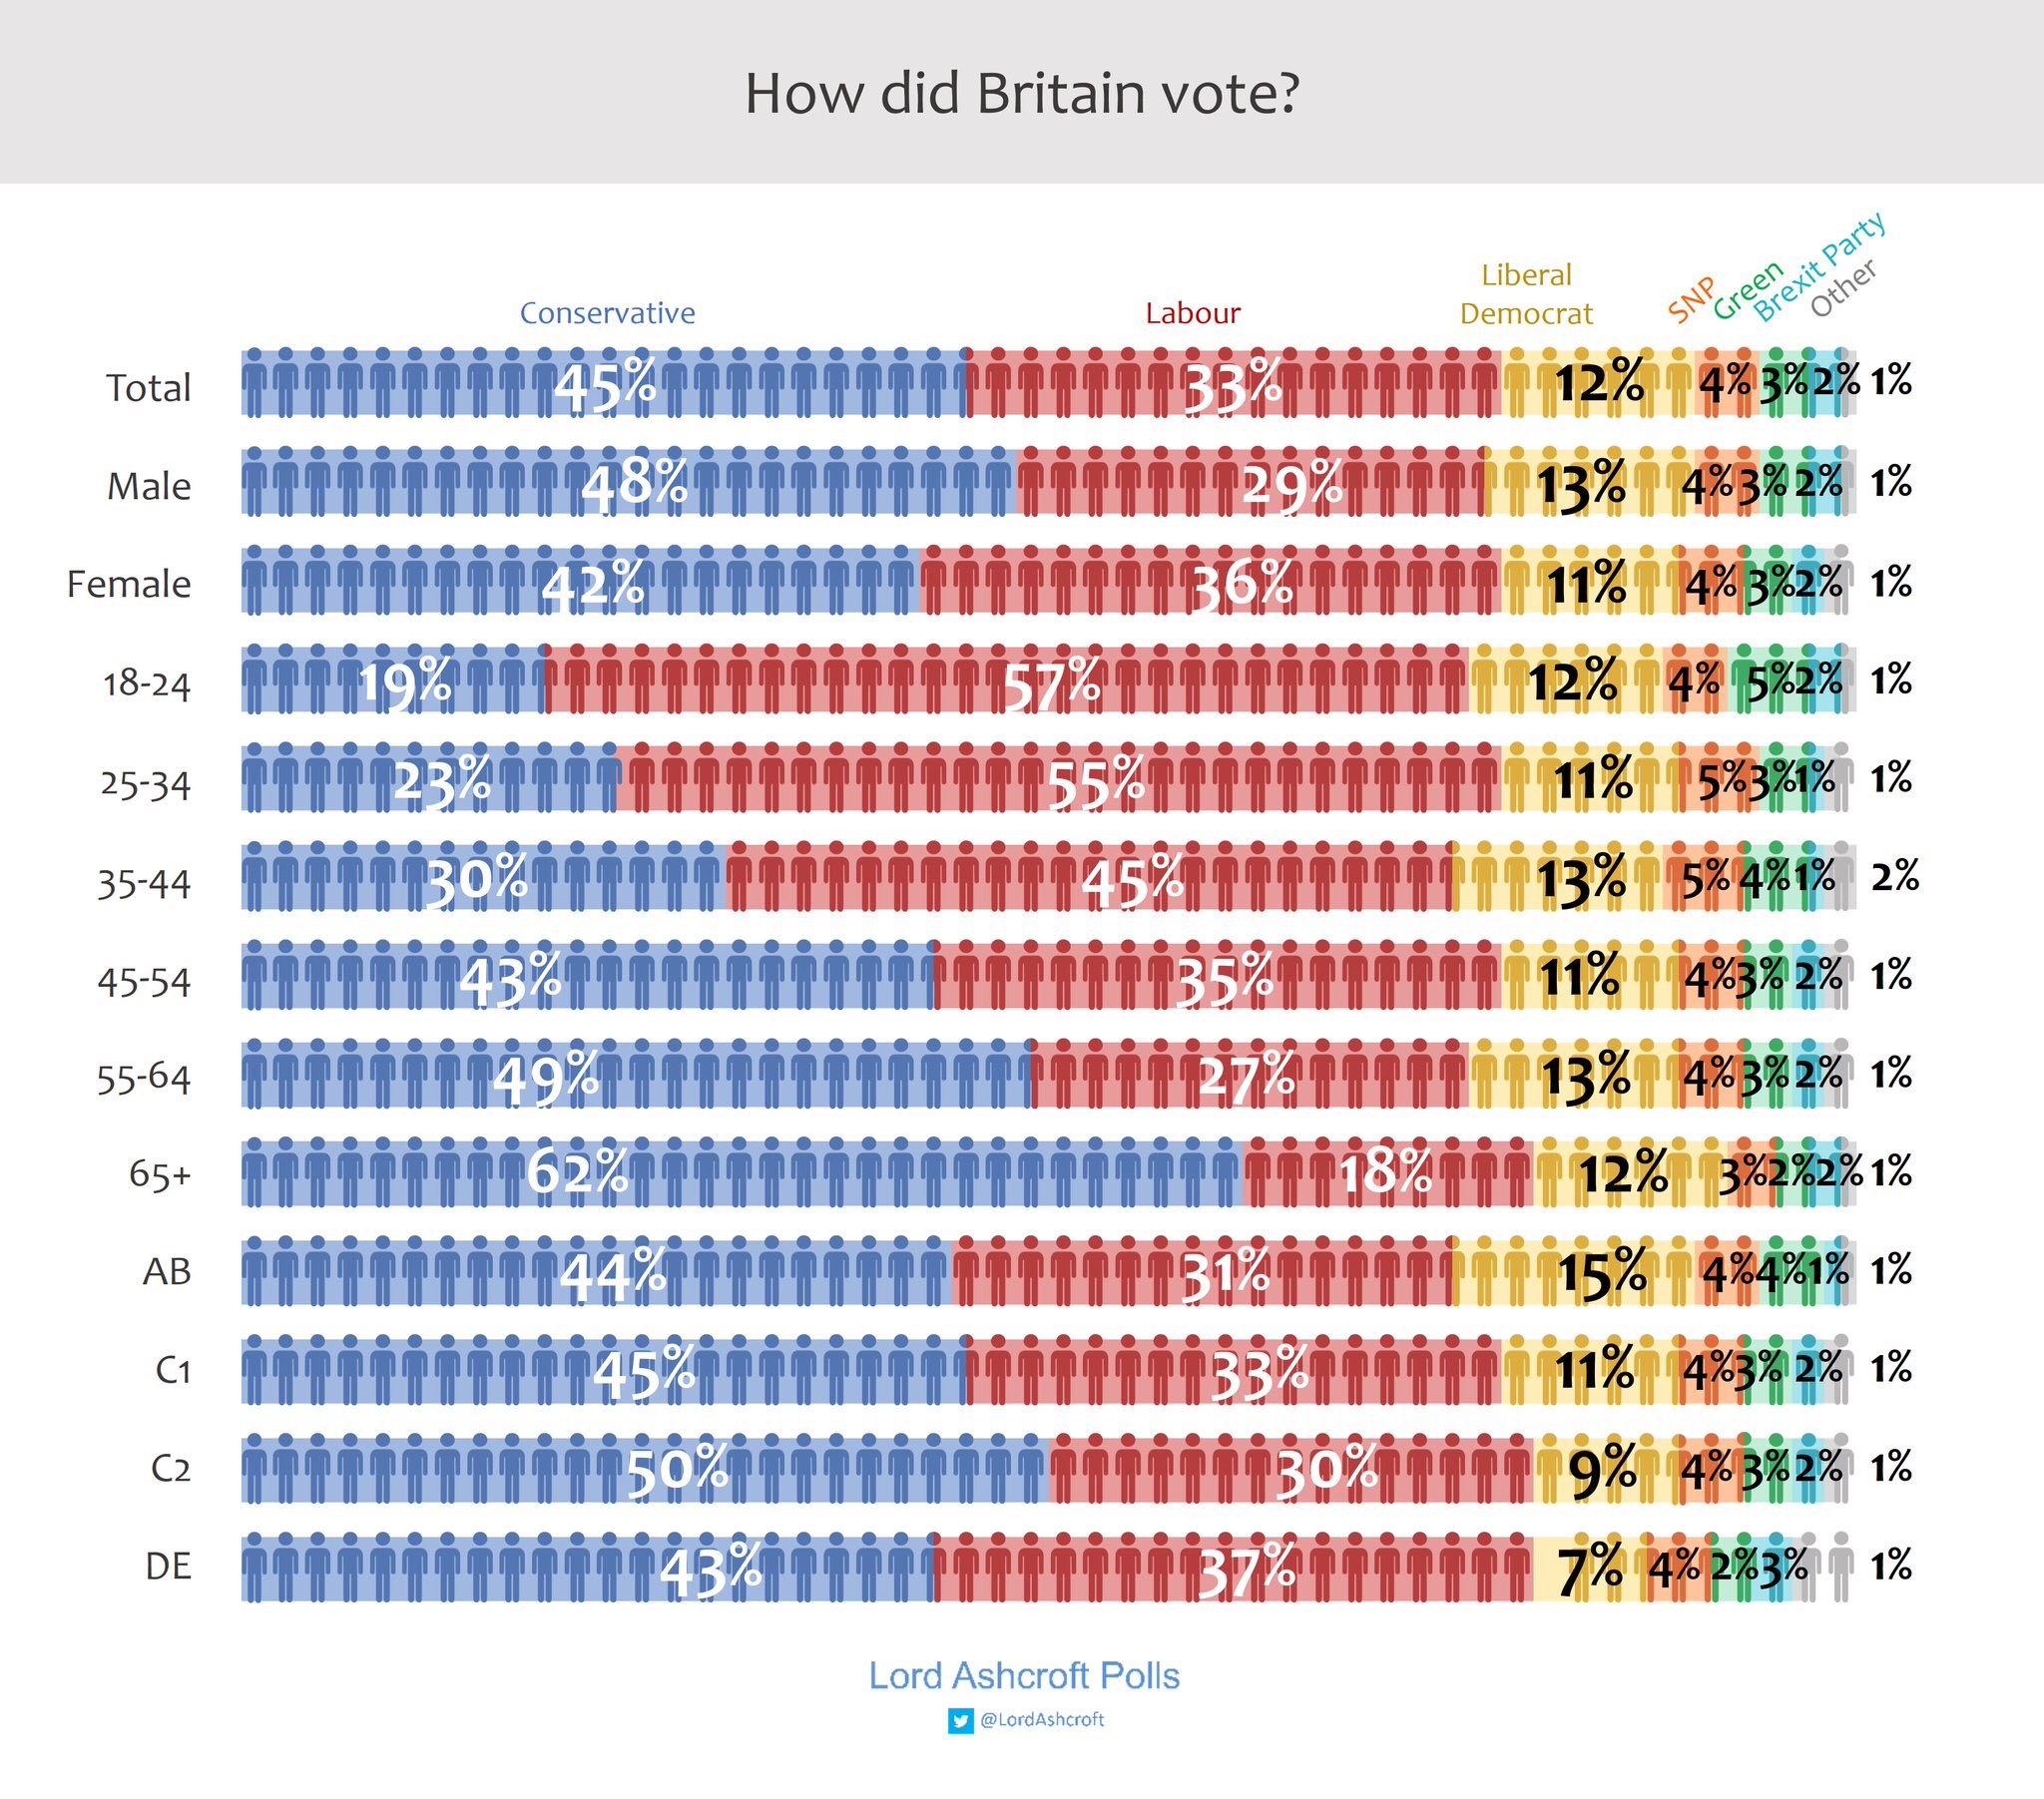 18-24 years old = 19% Tory65+ years old = 62% ToryThe young should be allowed to choose their future